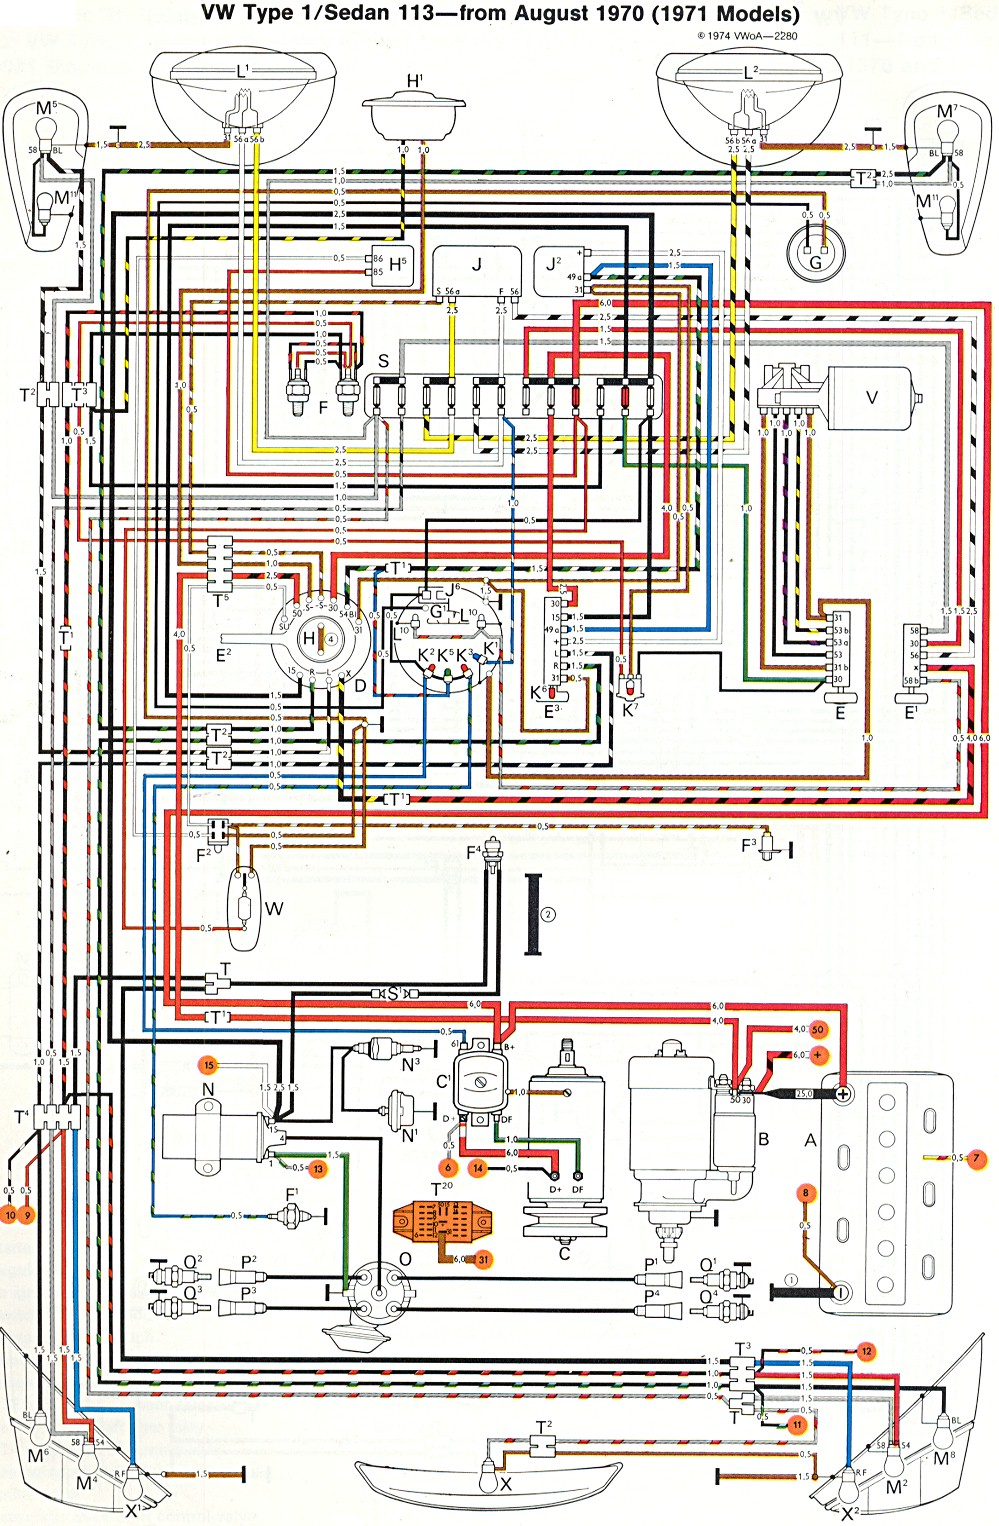 bug_super_71 1971 super beetle wiring diagram thegoldenbug com 1973 vw wiring diagram at reclaimingppi.co